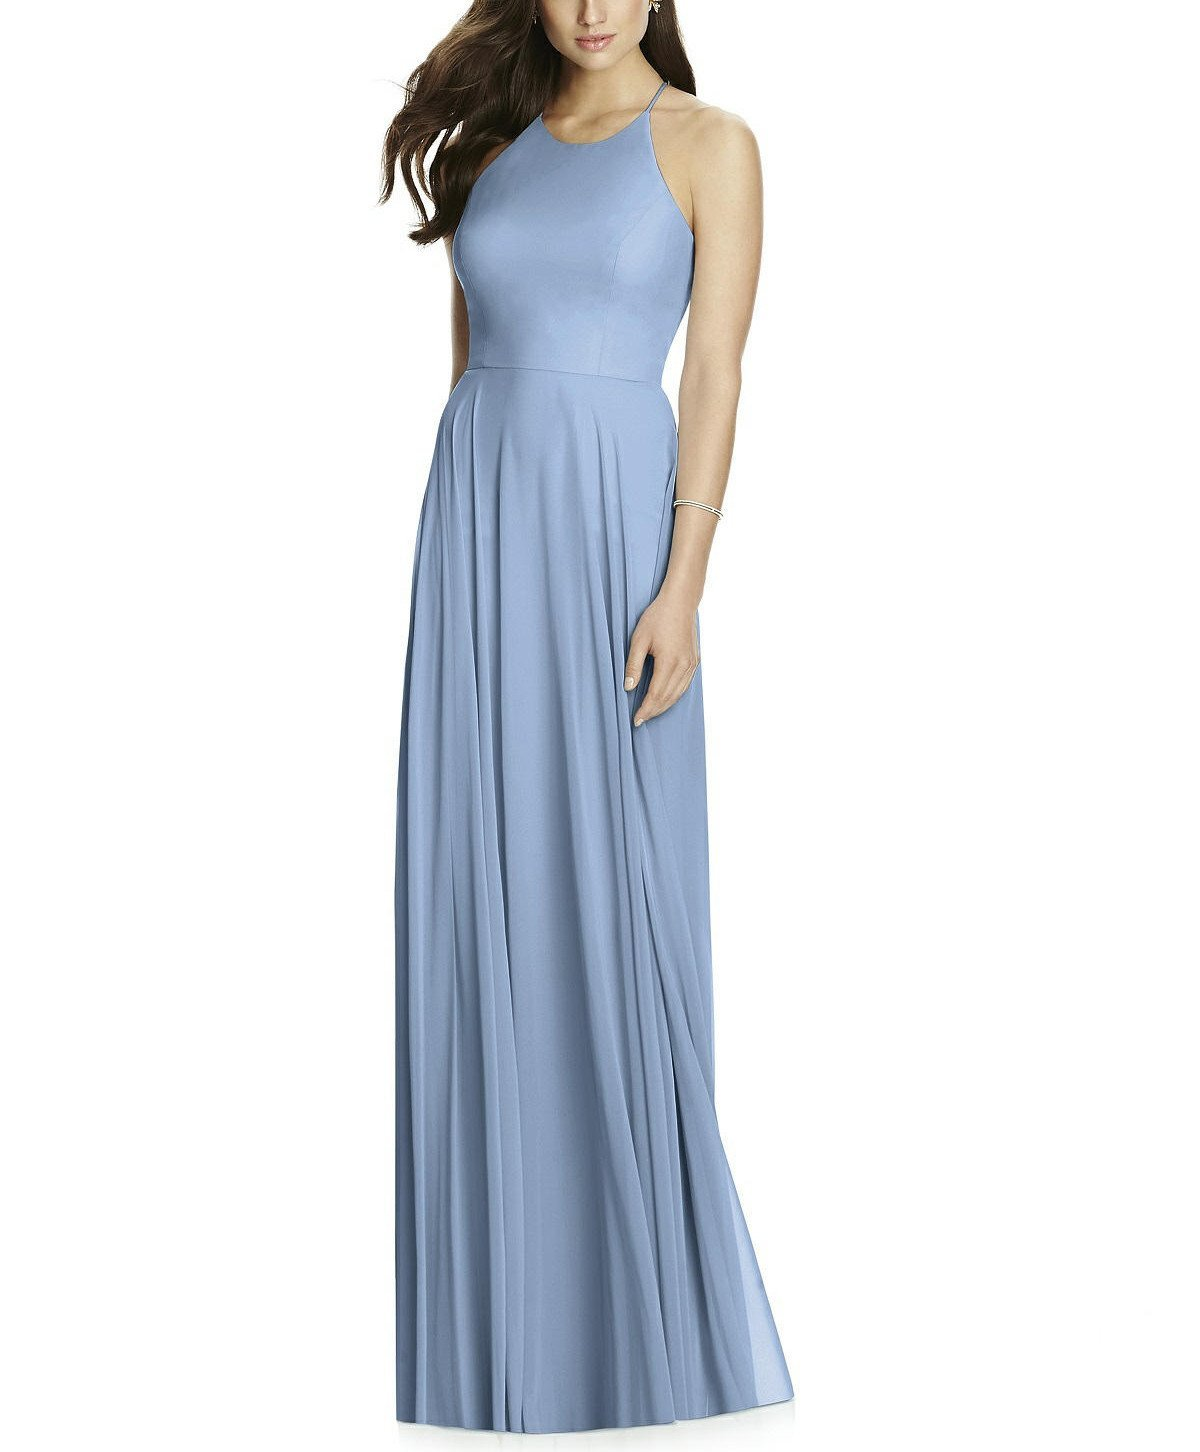 Dessy Collection Style 2988 in Cloudy